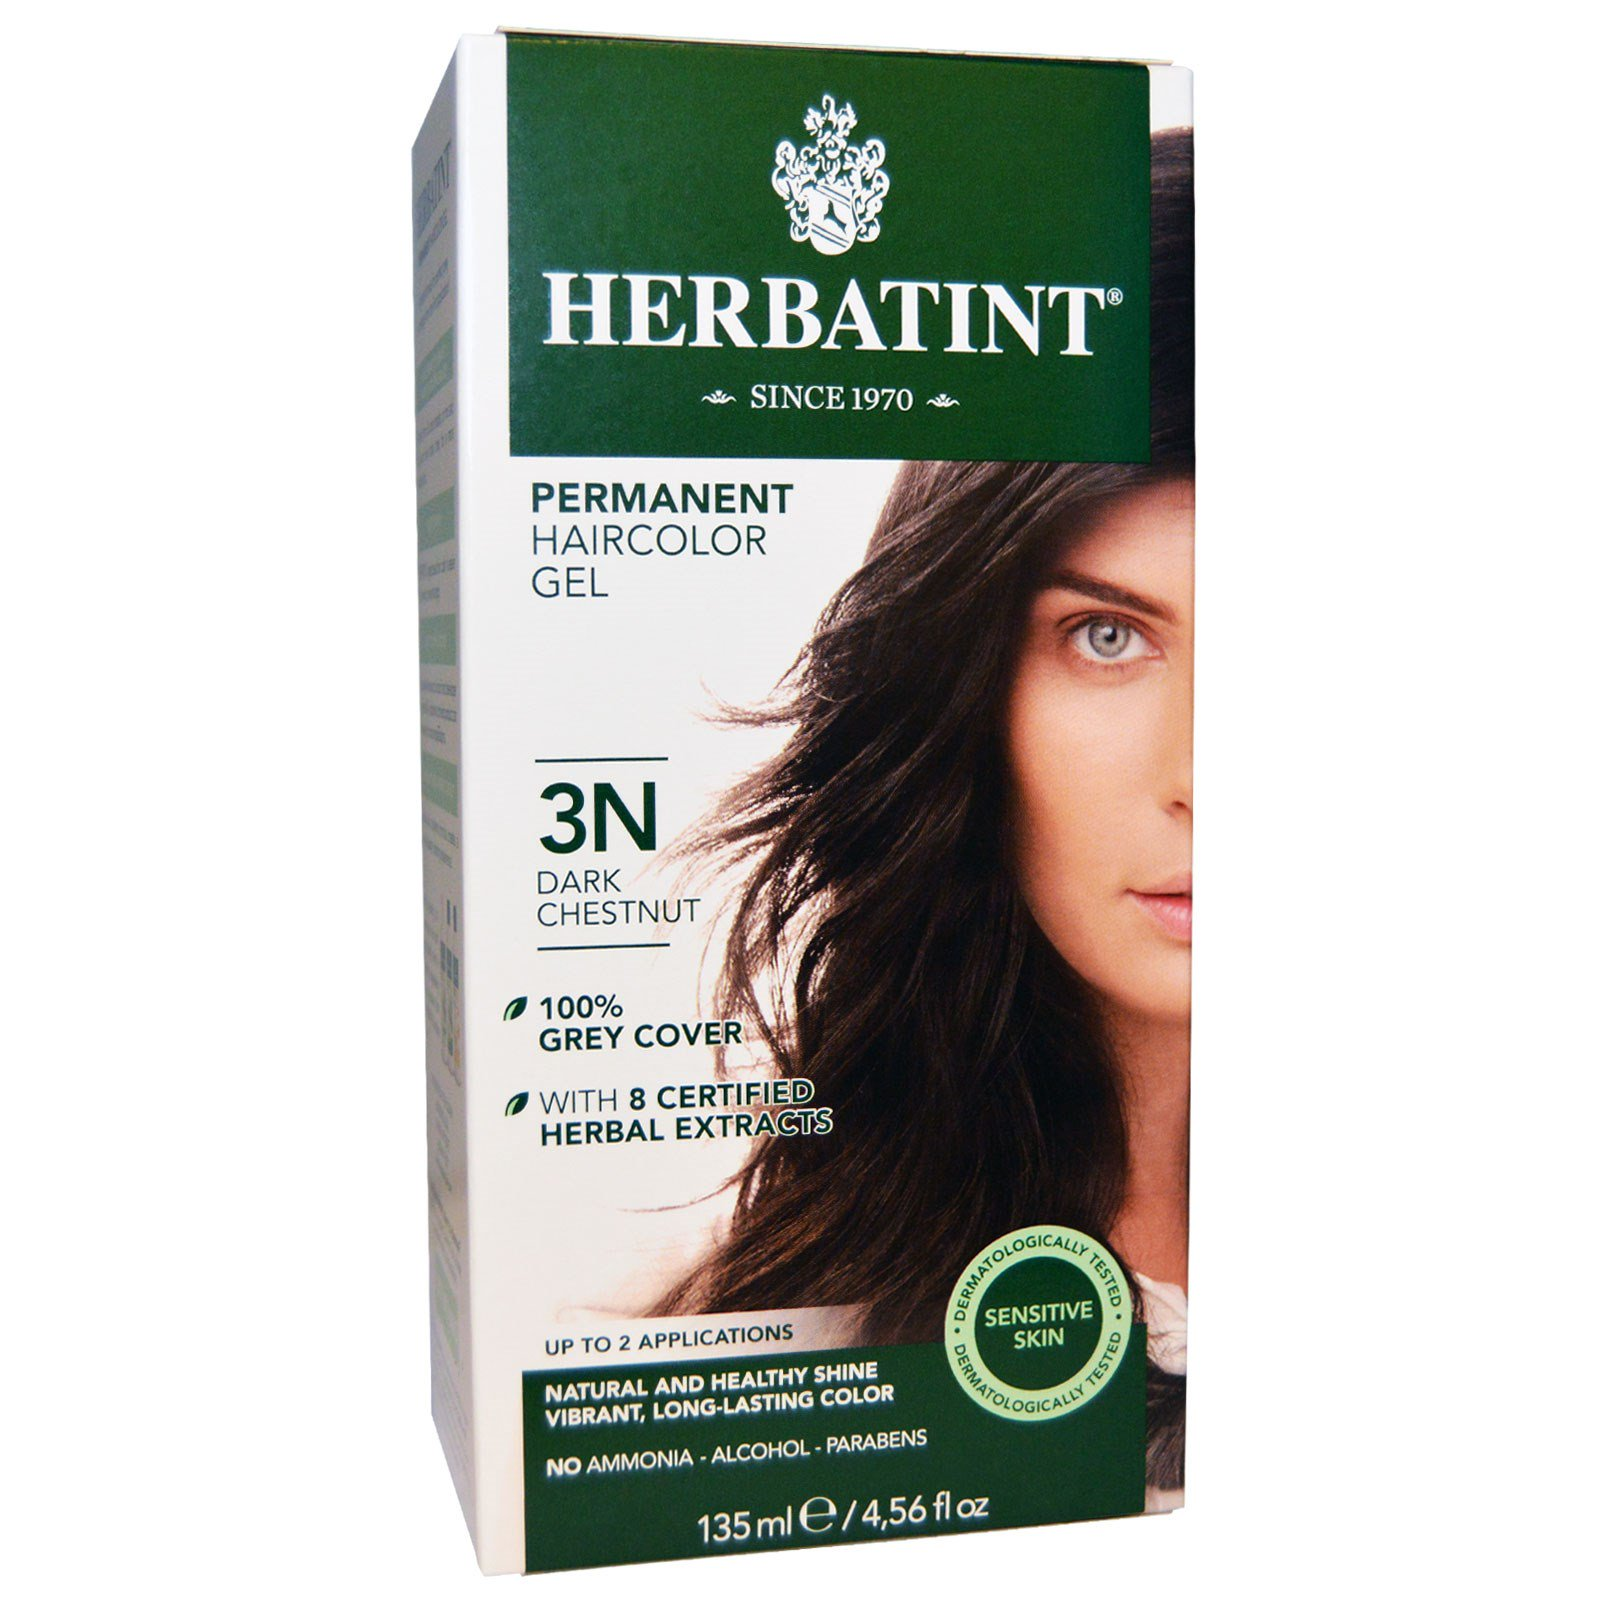 herbatint permanent hair color 3n dark chestnut fl oz 135 ml. Black Bedroom Furniture Sets. Home Design Ideas